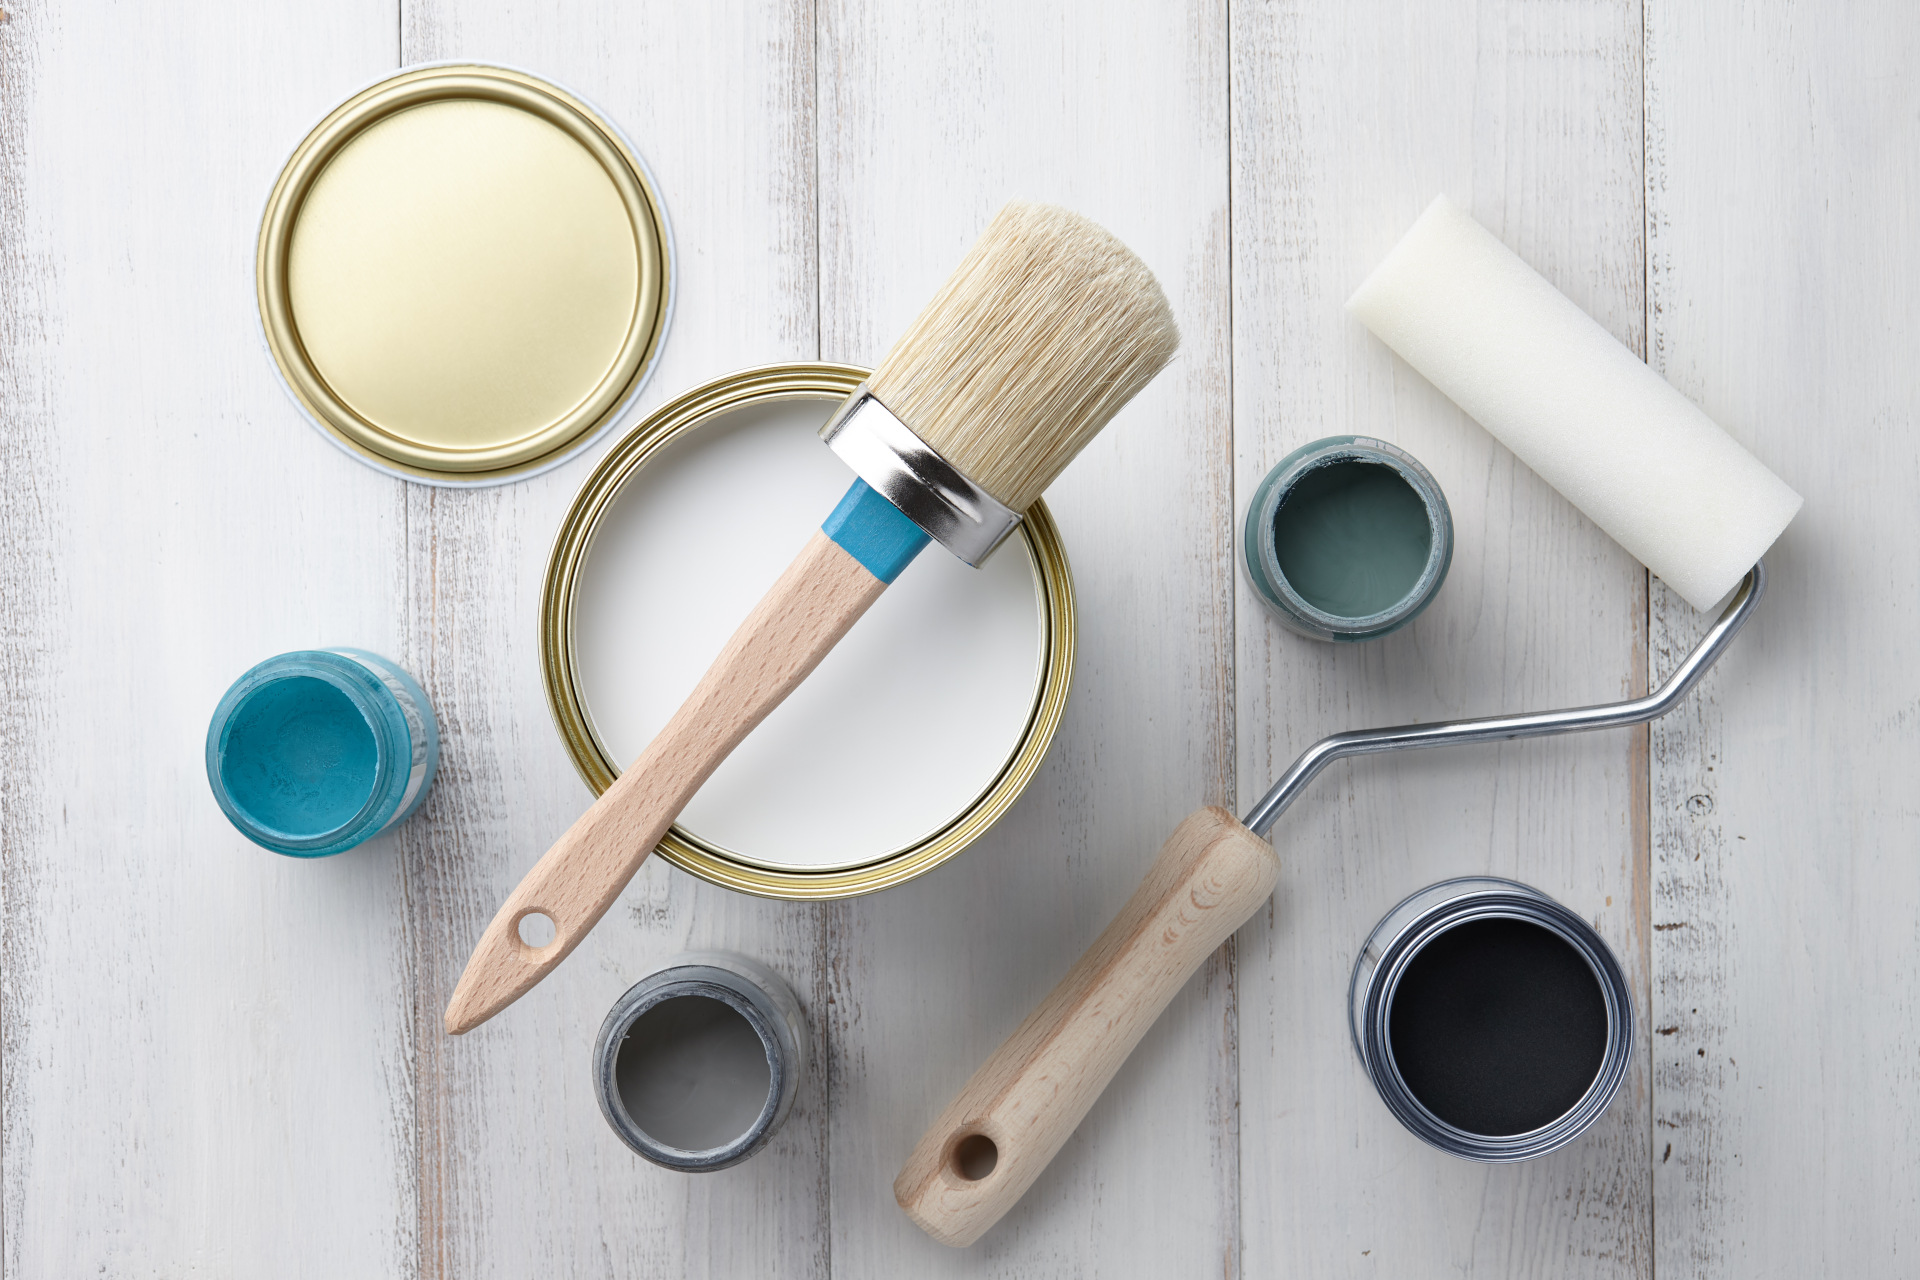 Miscellaneous painting equipment